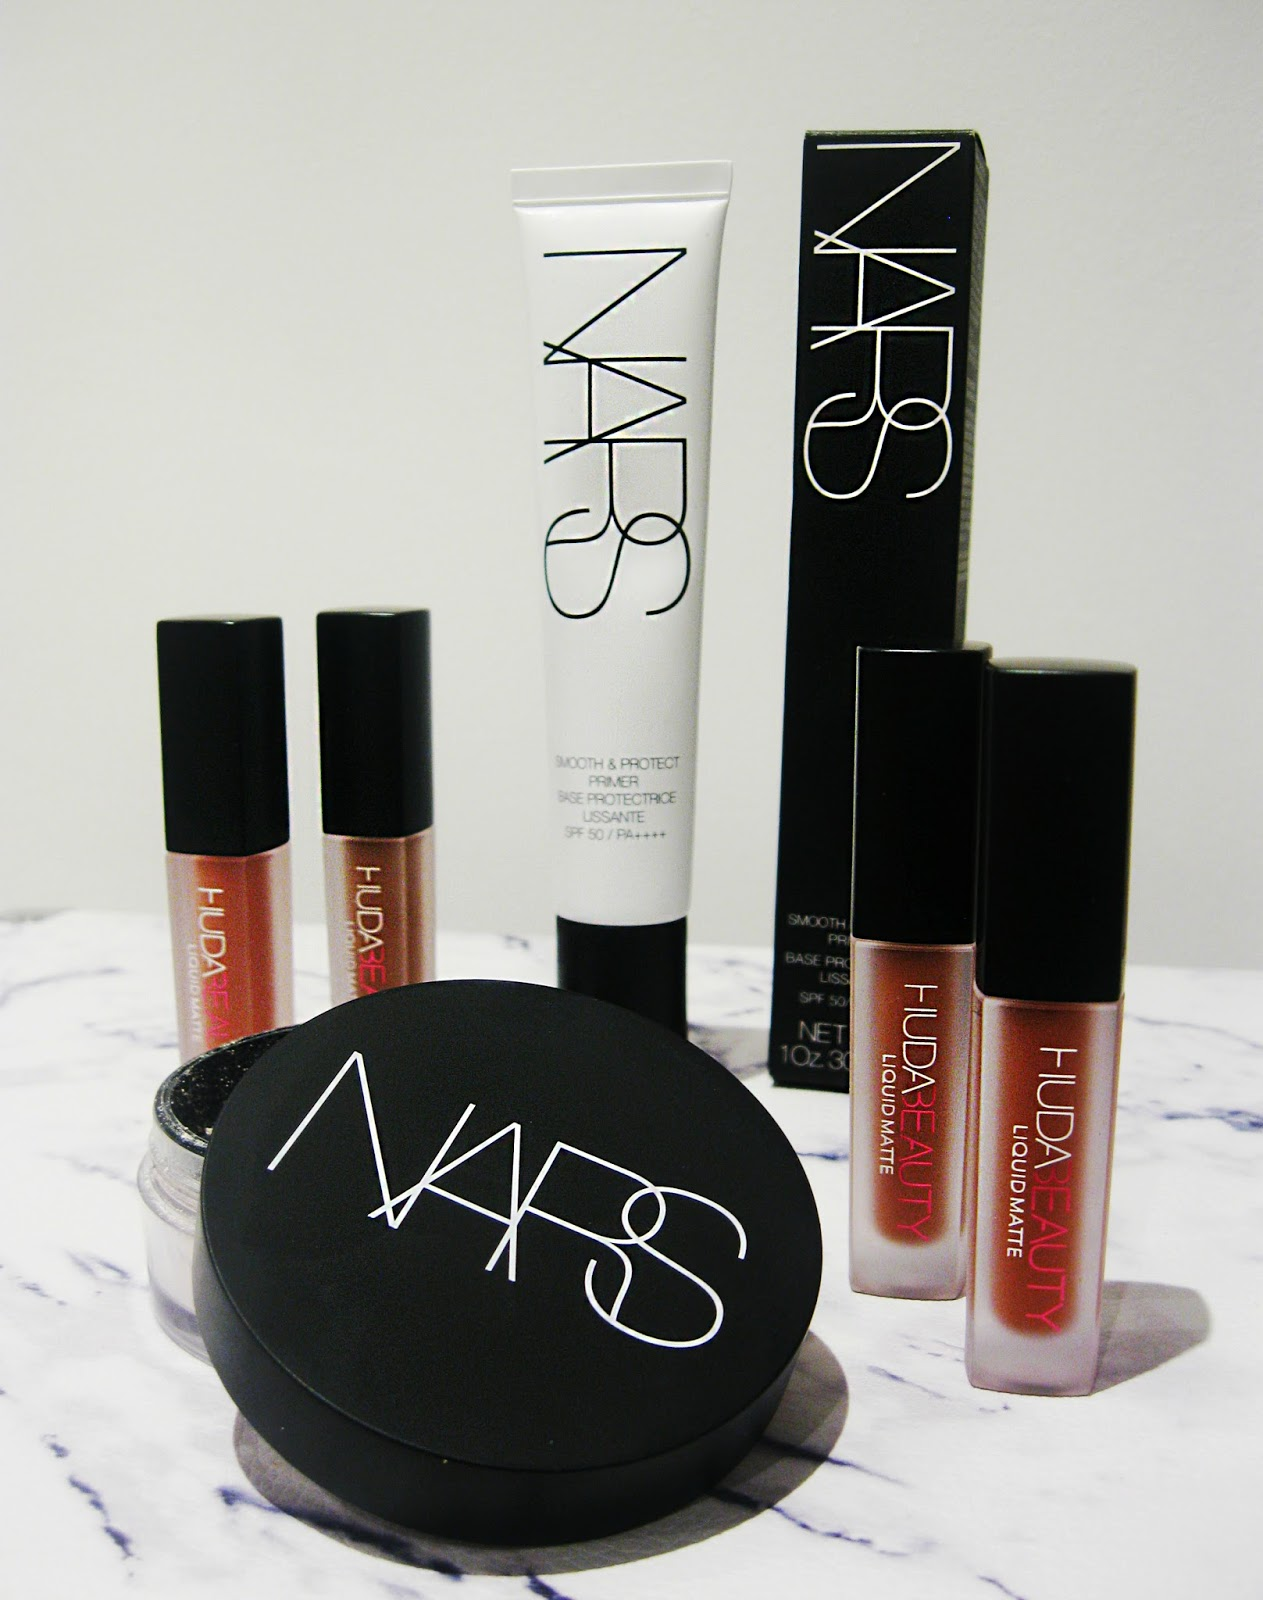 nars, huda beauty, huda lashes, huda scarlett lashes, nars primer, nars powder